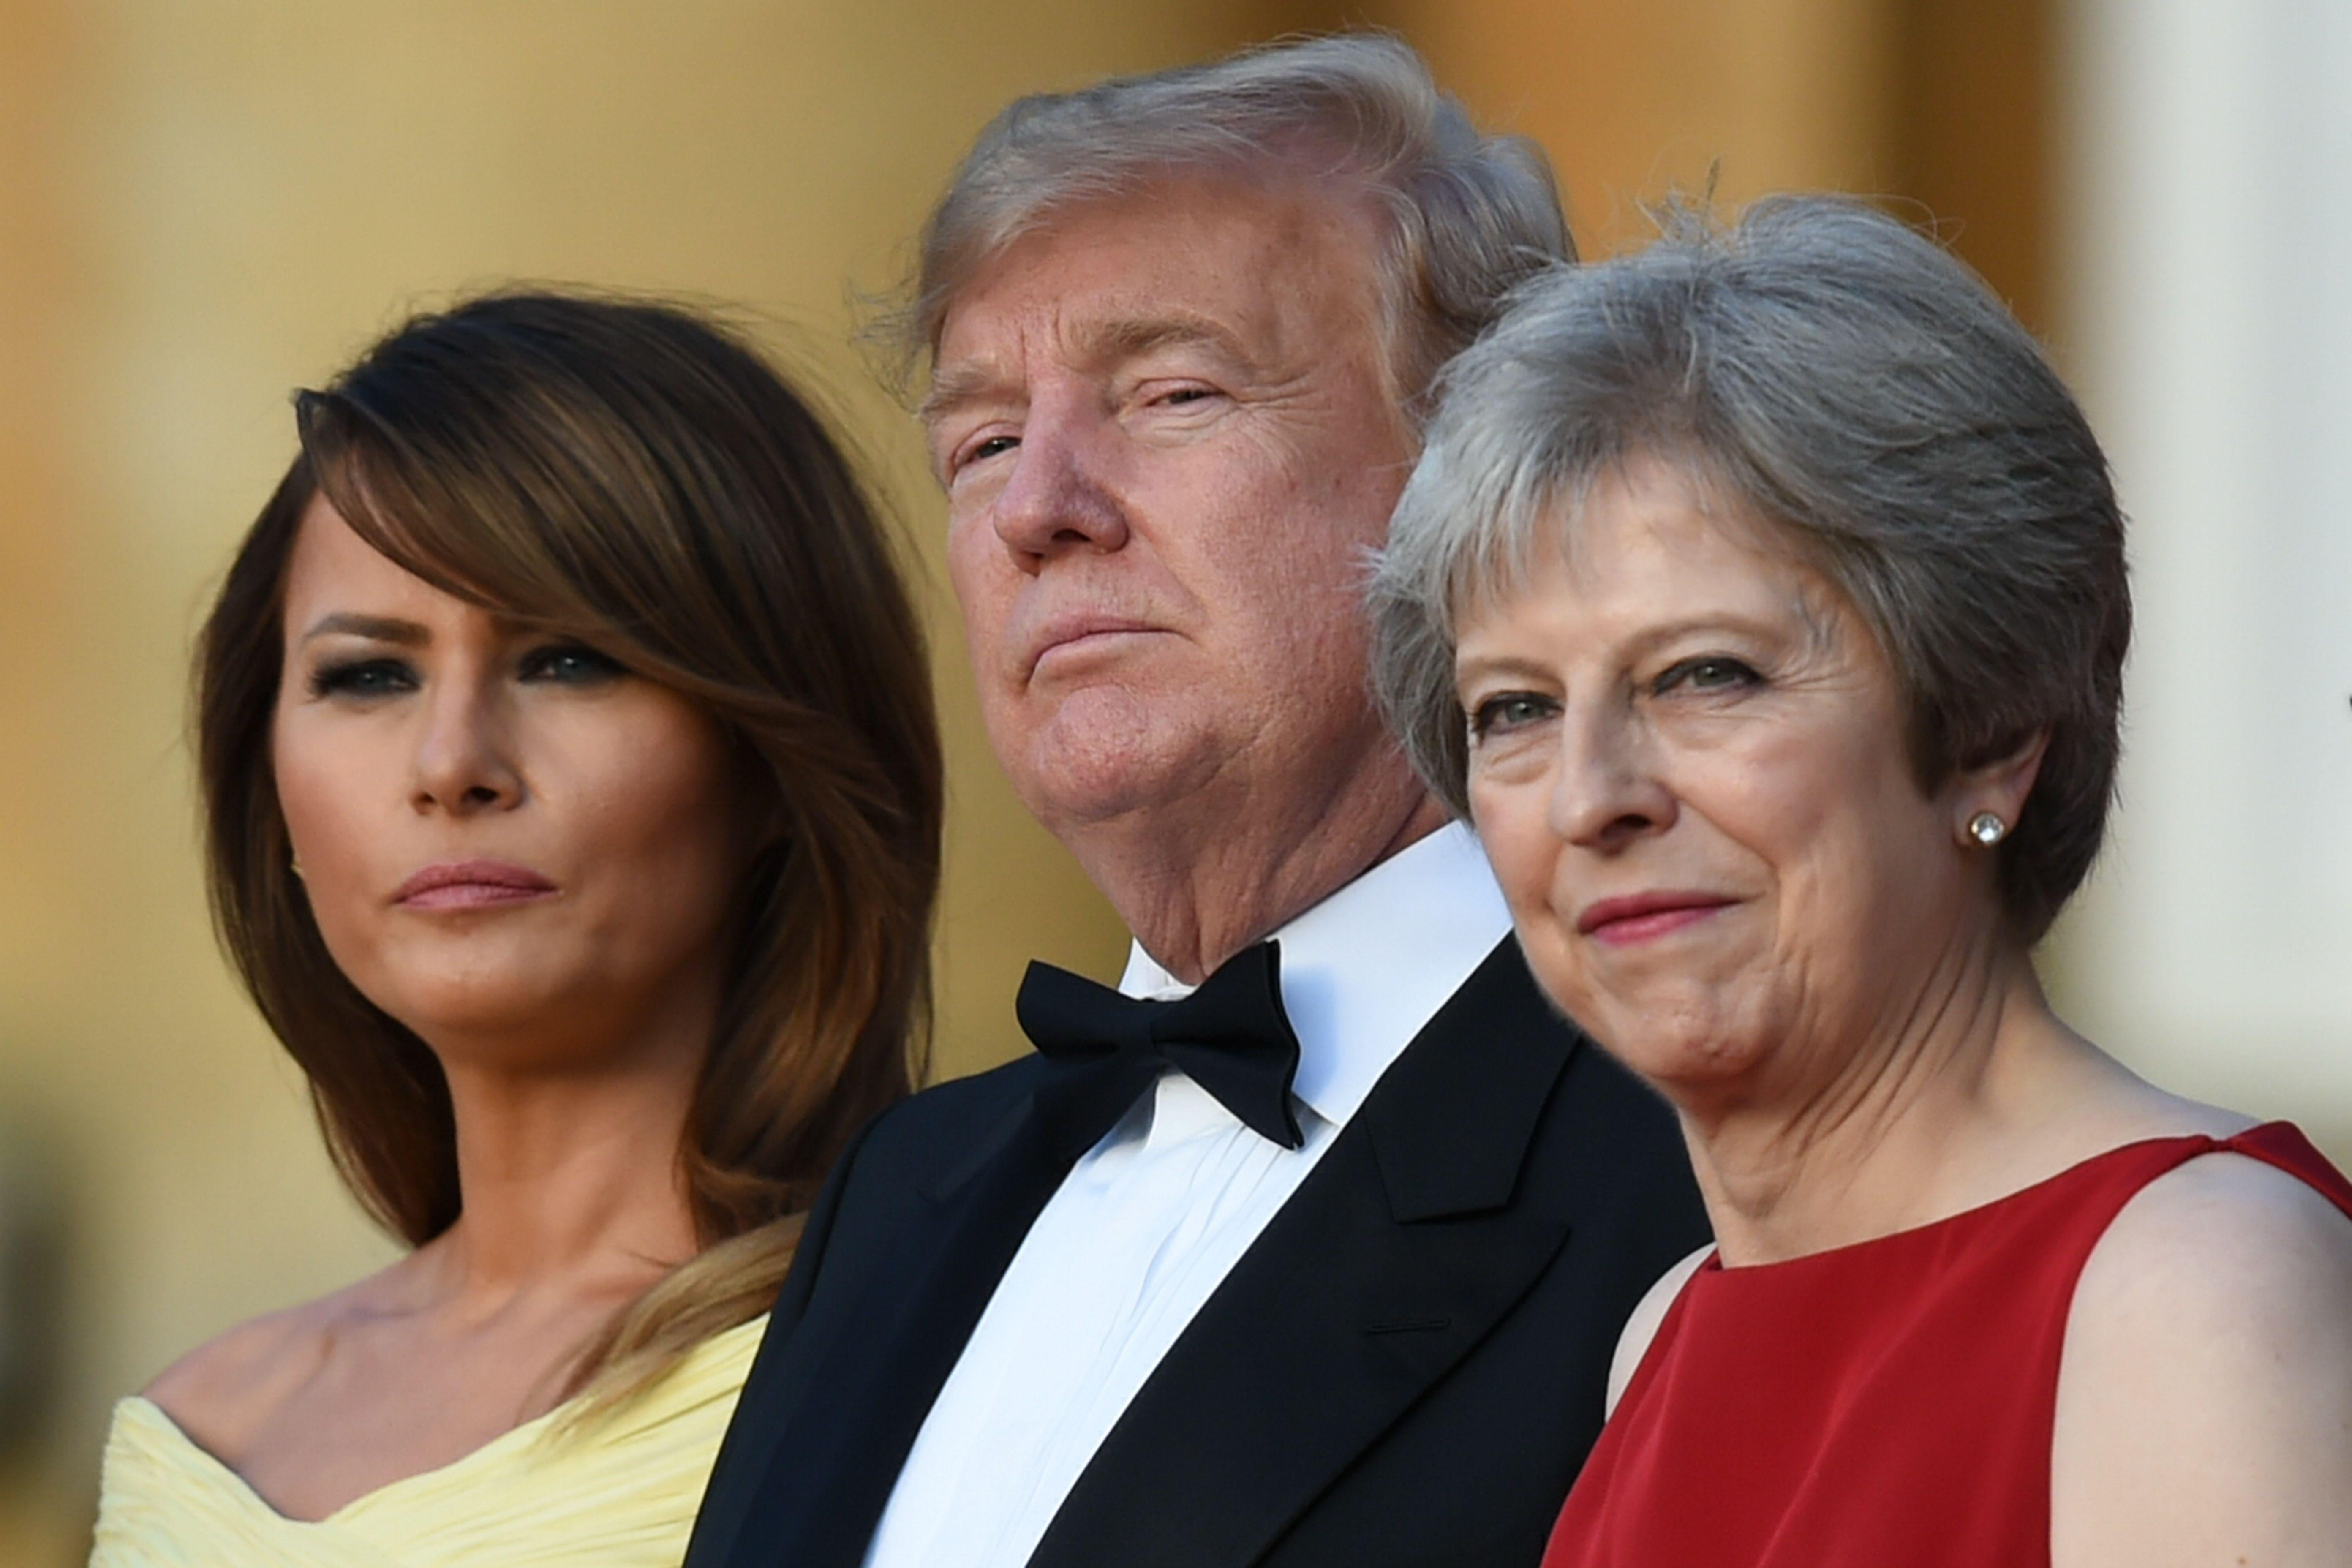 First Lady Melania Trump, President Donald Trump and Britain's Prime Minister Theresa May stand on steps during a ceremonial welcome at Blenheim Palace on July 12, 2018.